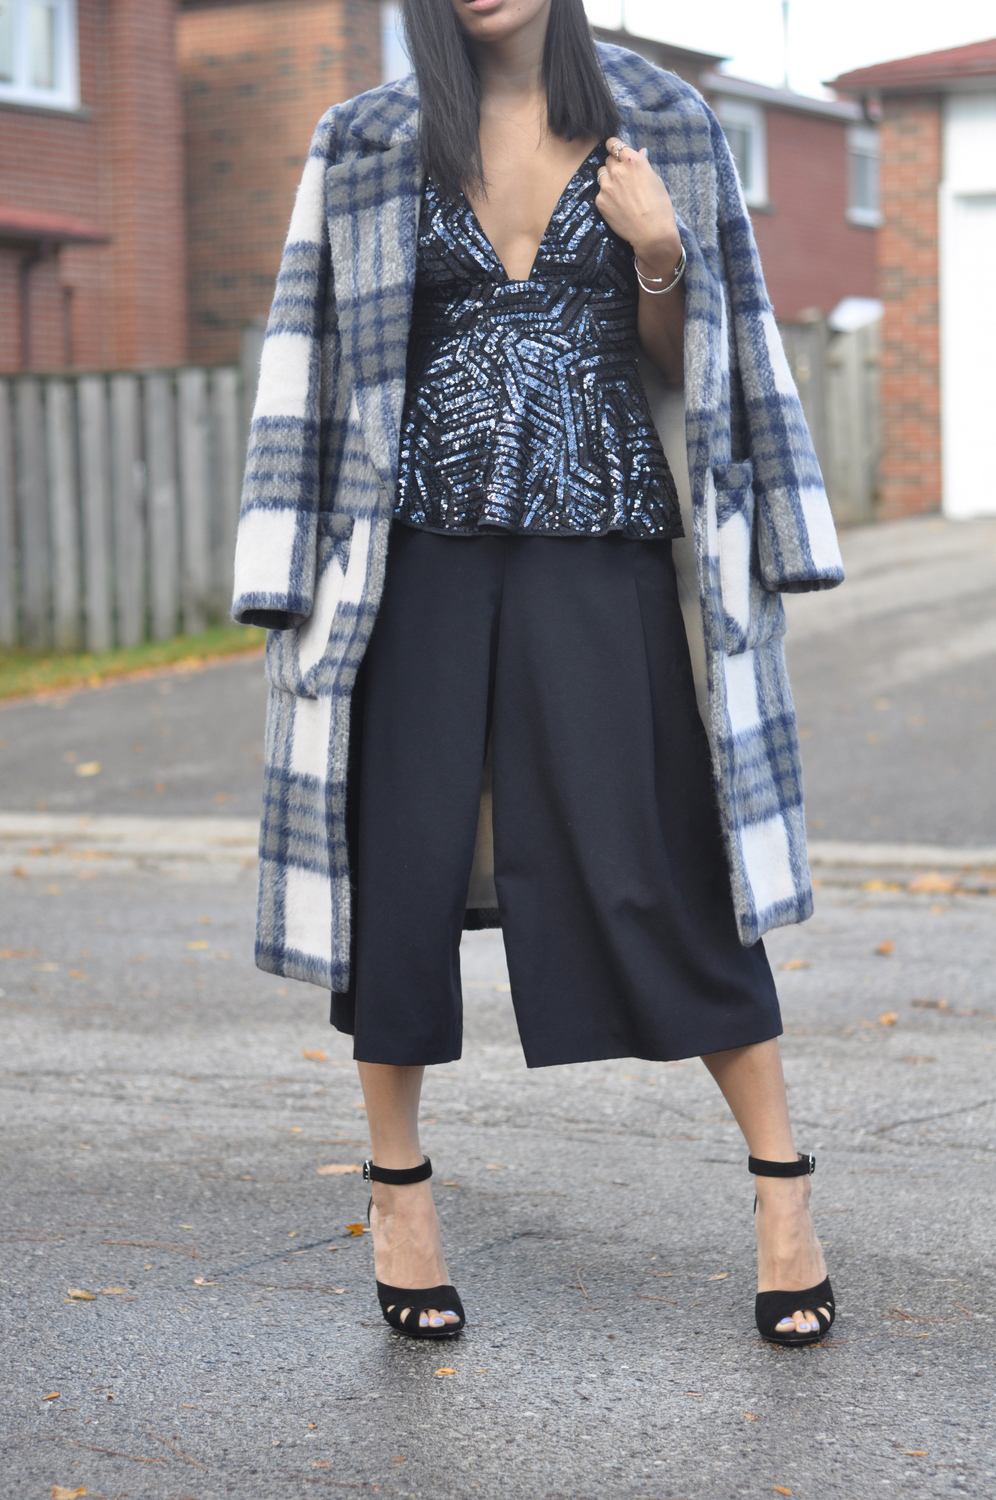 WMCFW Day 4 streetstyle Culottes and Heels